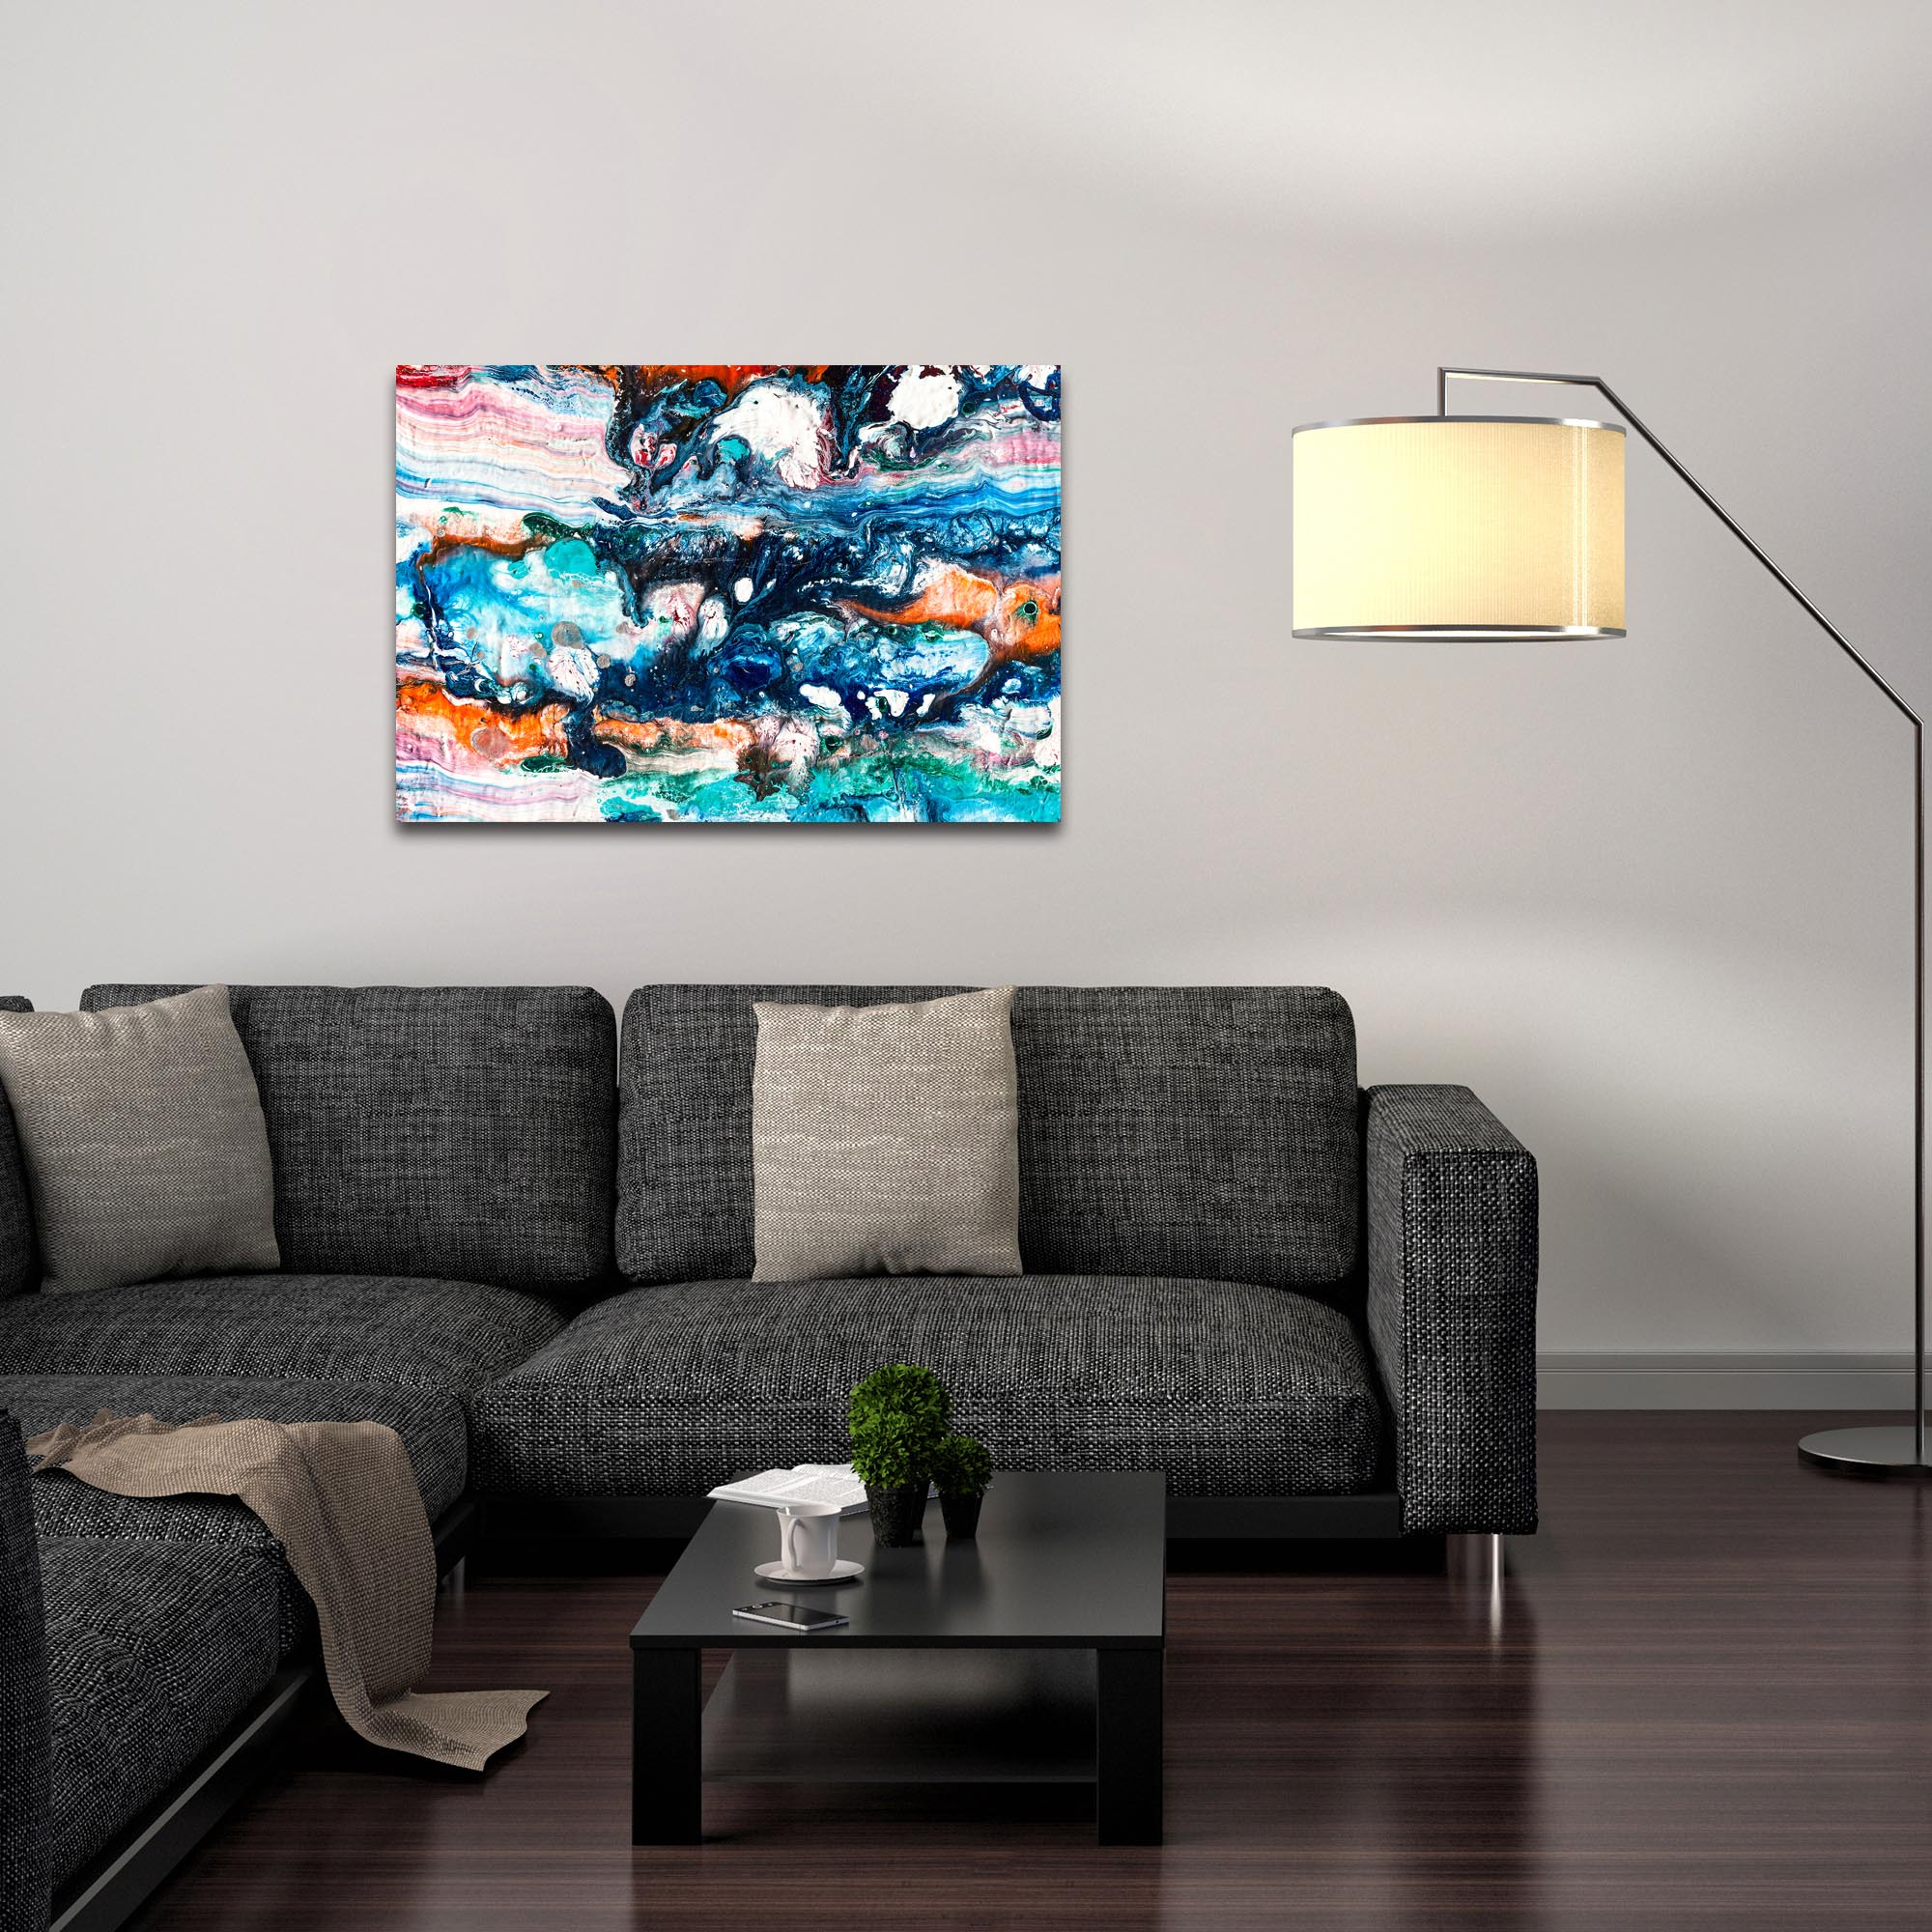 Abstract Wall Art 'Sunset On Her Breath 4' - Colorful Urban Decor on Metal or Plexiglass - Lifestyle View